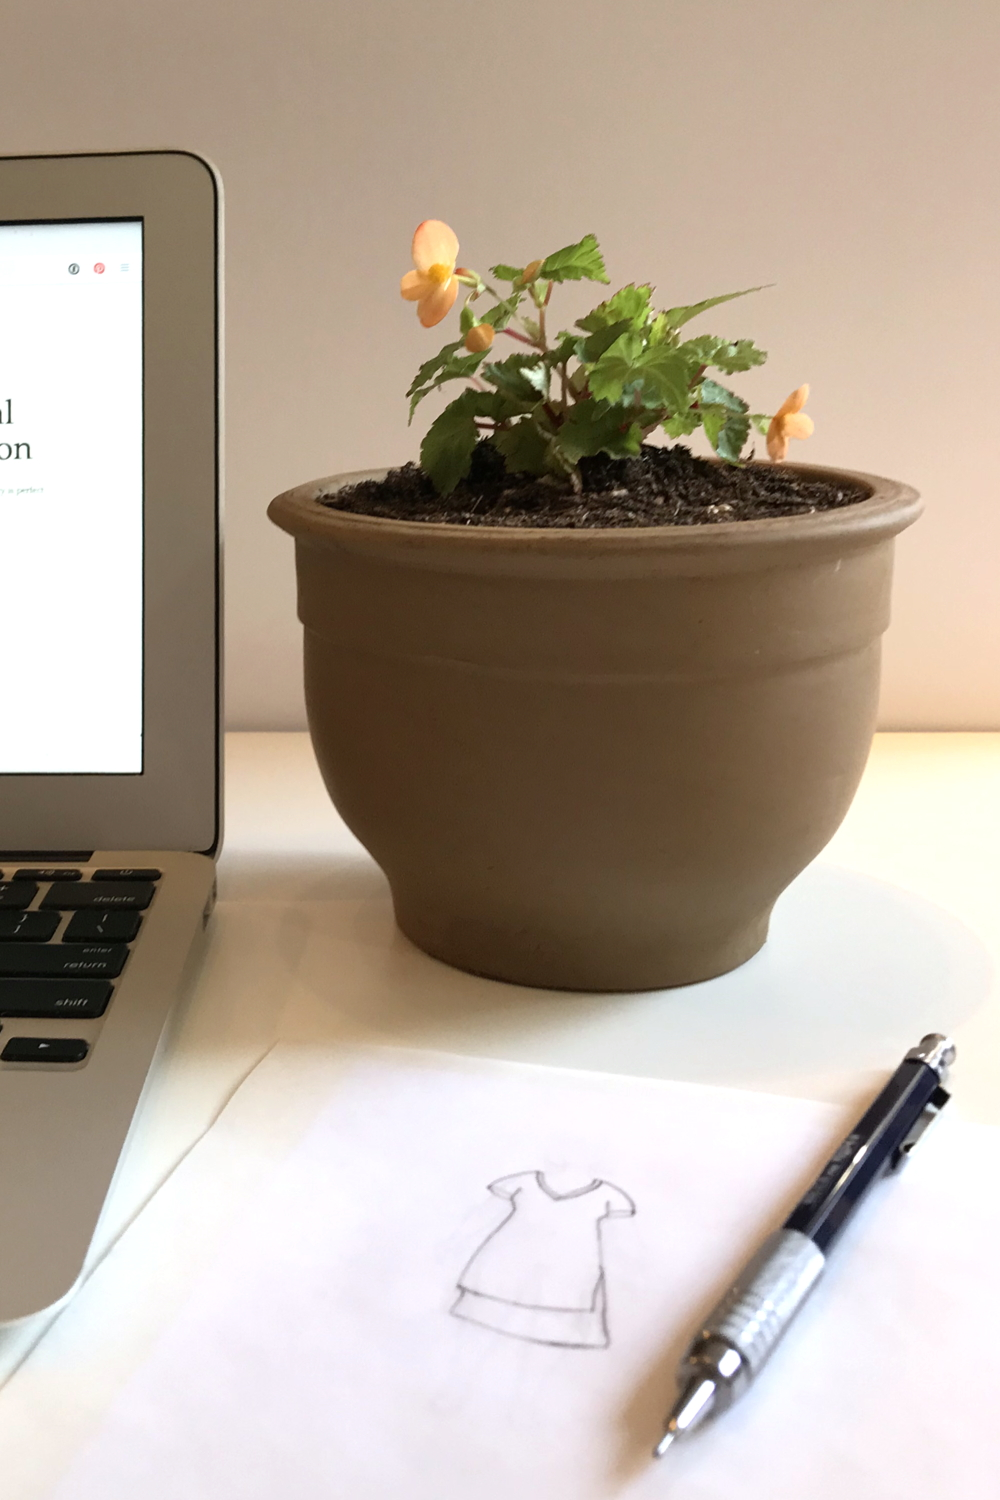 A small potted plant with orange flowers (Begonia sutherlandii) sits on a desk next to an open laptop, a pencil, and a fashion sketch of a dress.